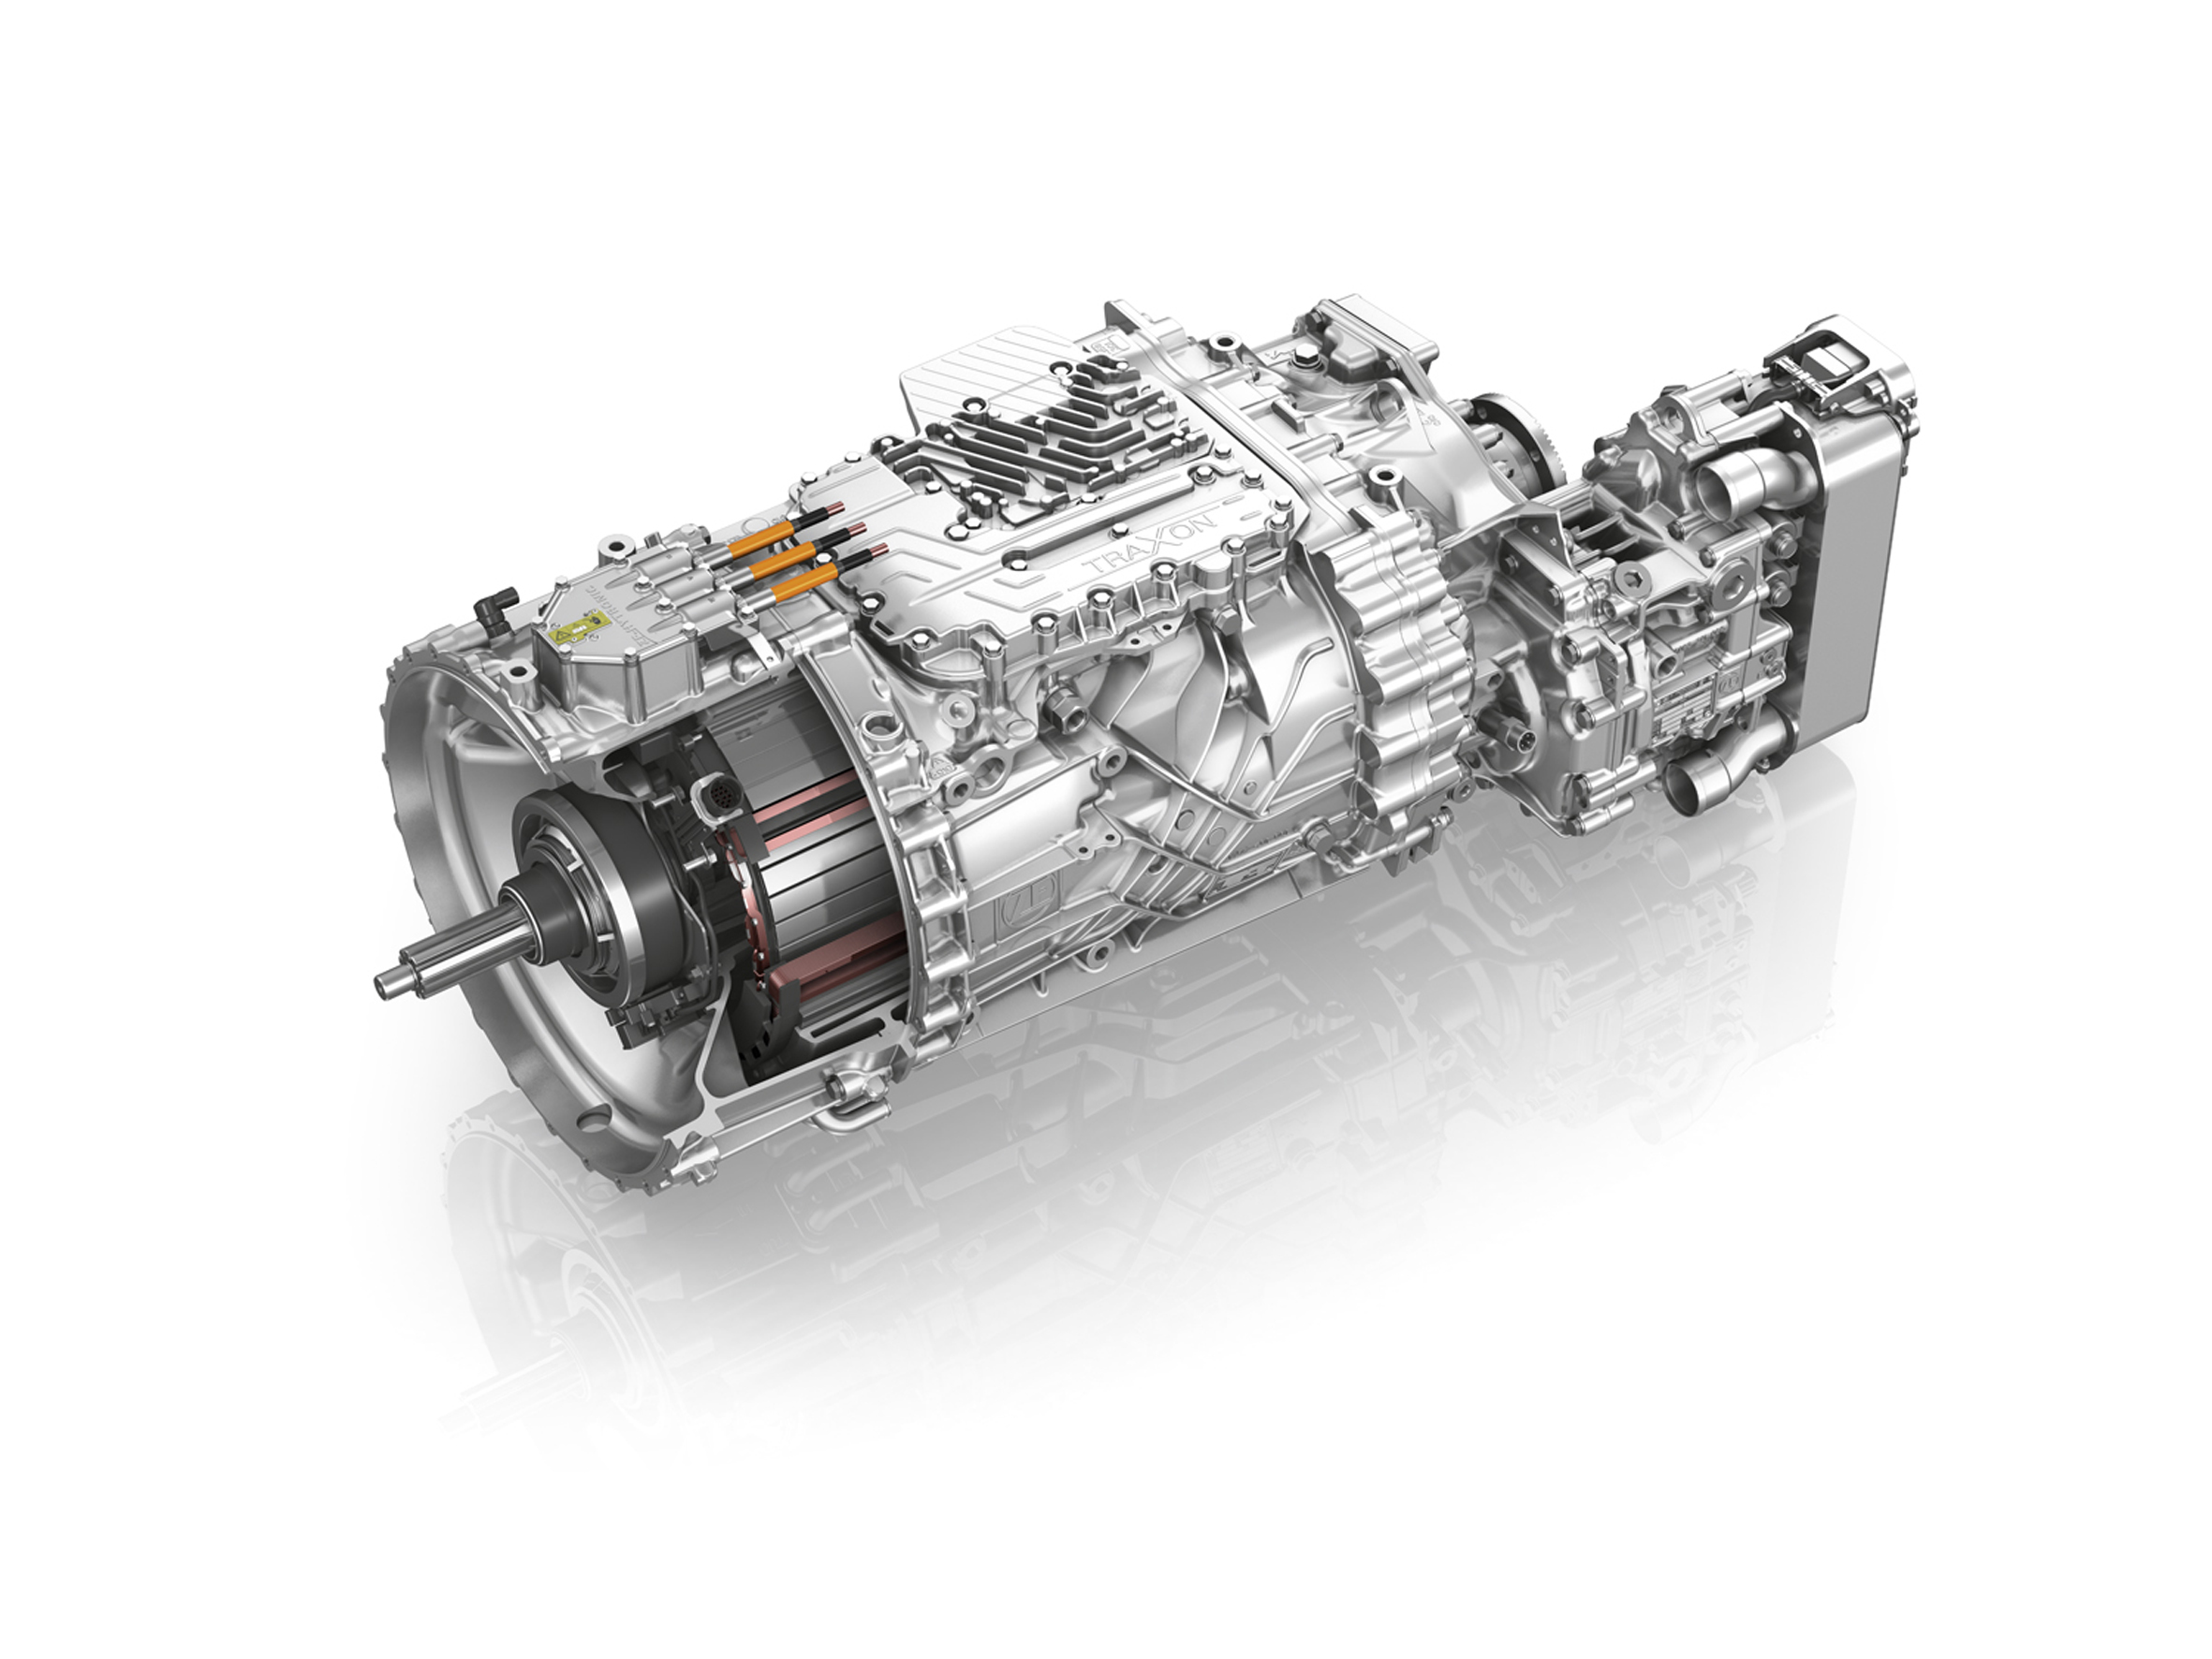 Zf Demonstrates Technological Capabilities Truck News